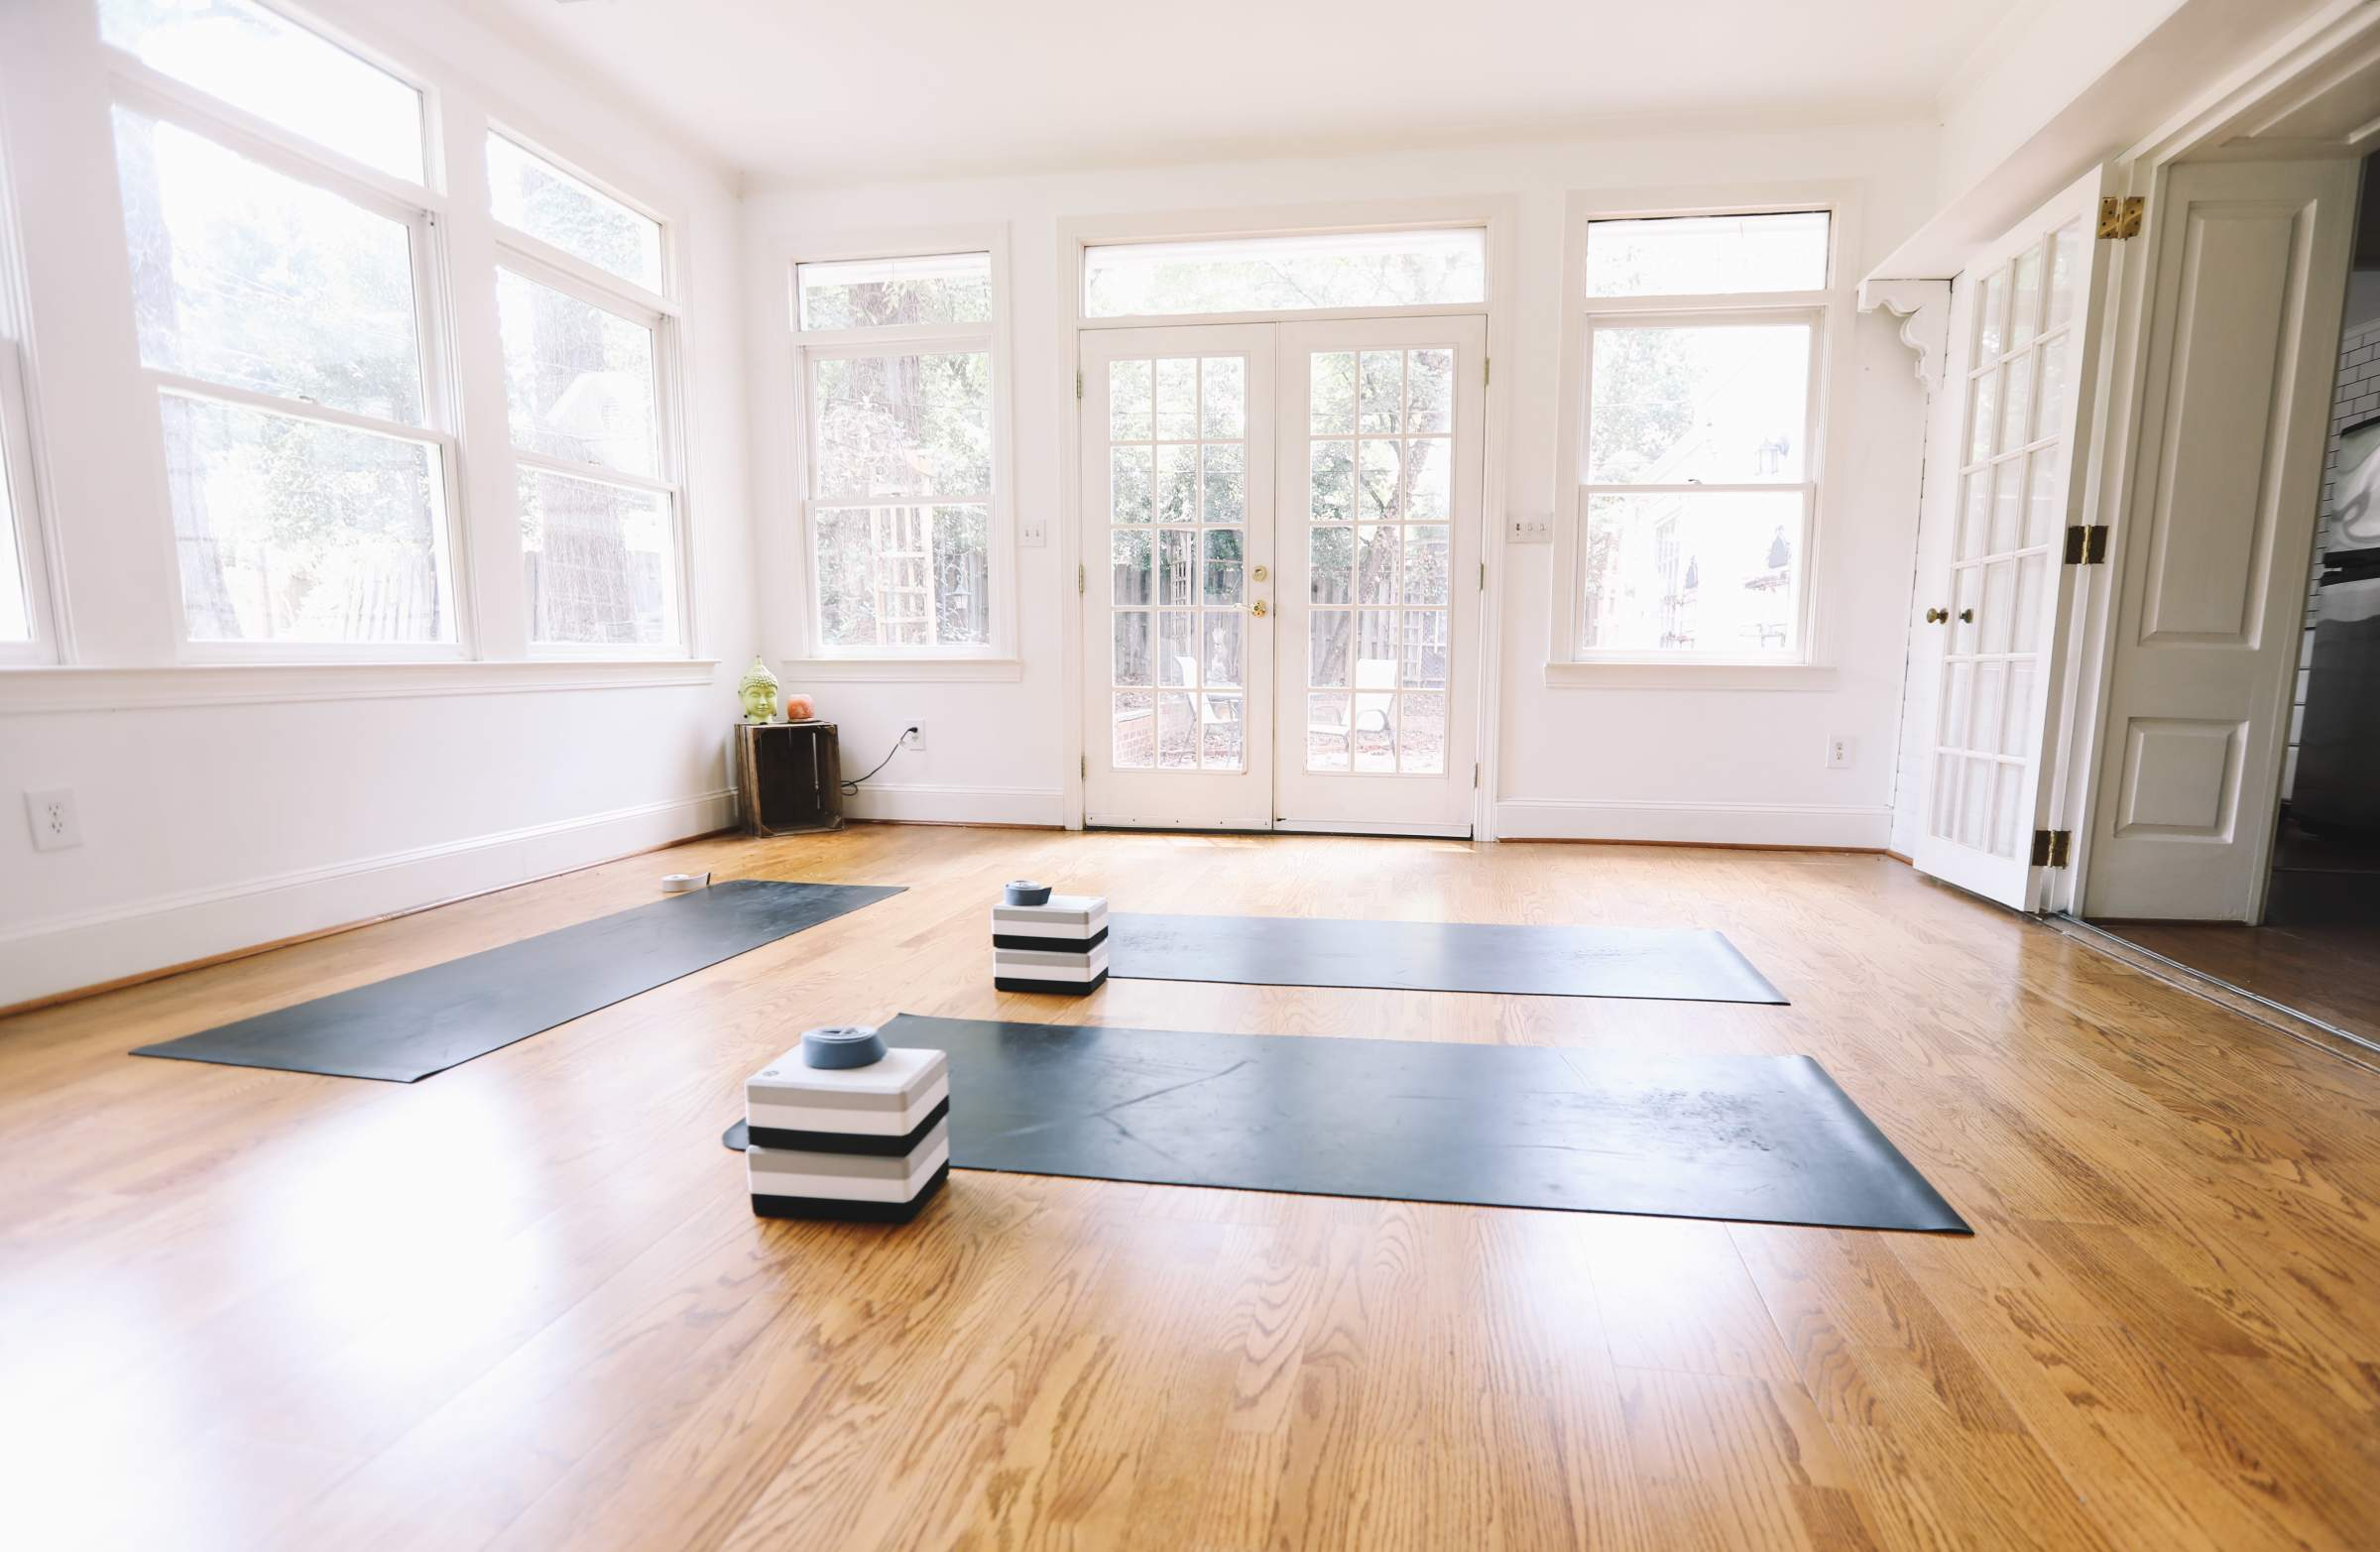 There are many ways your mind and body can benefit from practicing yoga thats why creating a home yoga studio and having a place to do yoga whenever you